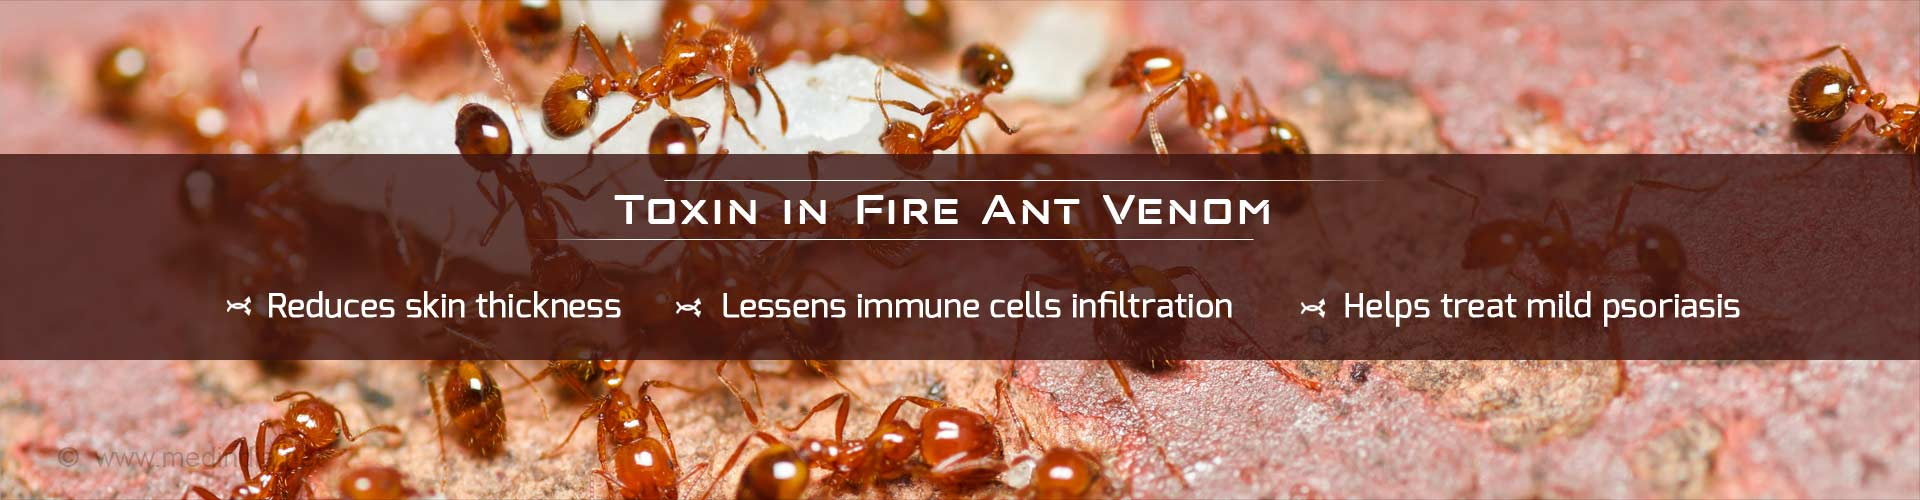 Toxin in fire ant venom - Reduces skin thickness - Lessens immune cells infiltration - Helps treat mild psoriasis